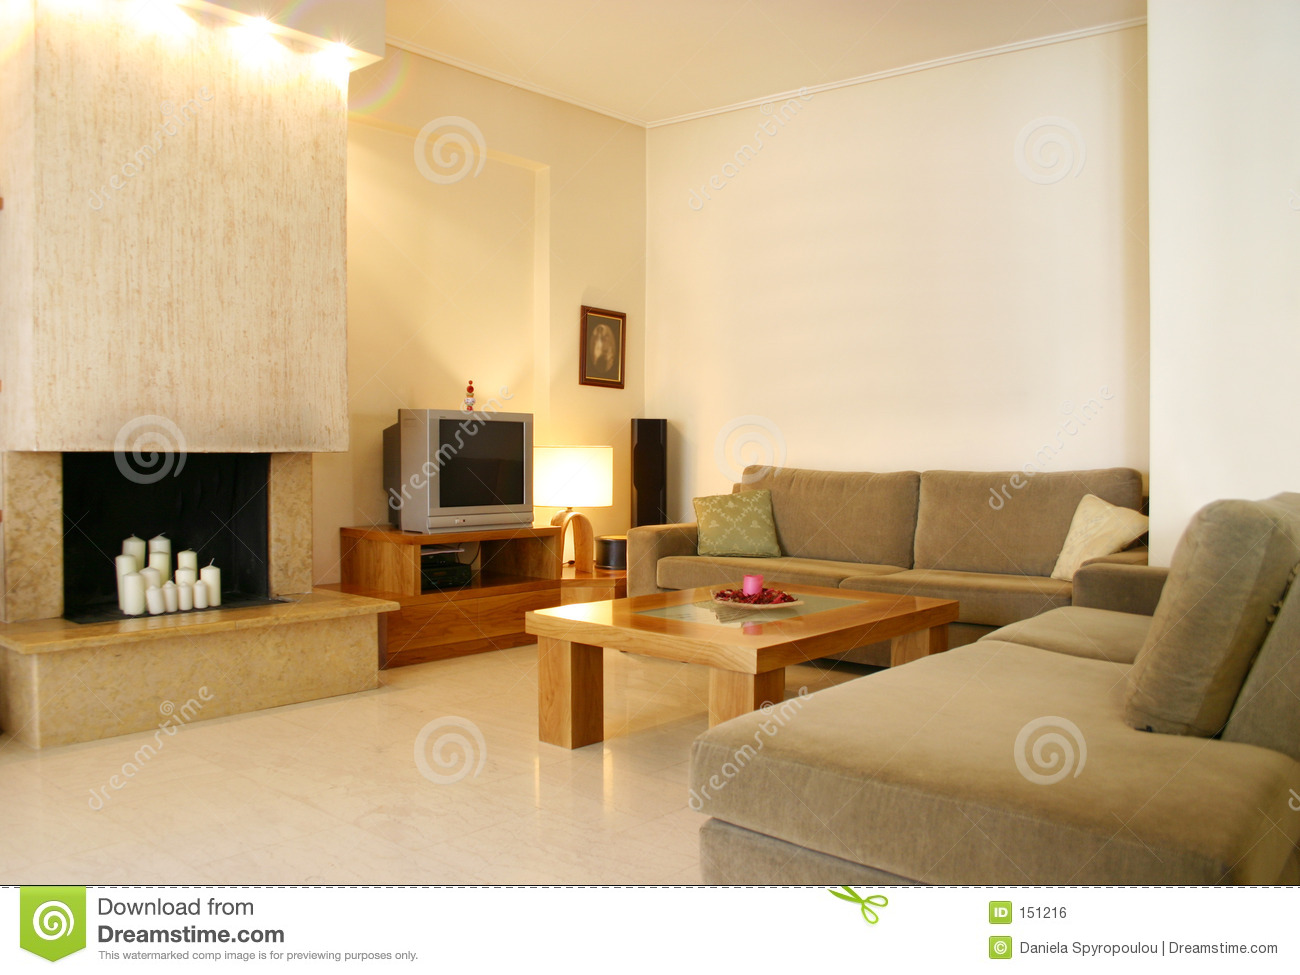 Home Interior Design Royalty Free Stock Image Image - Free home interior design